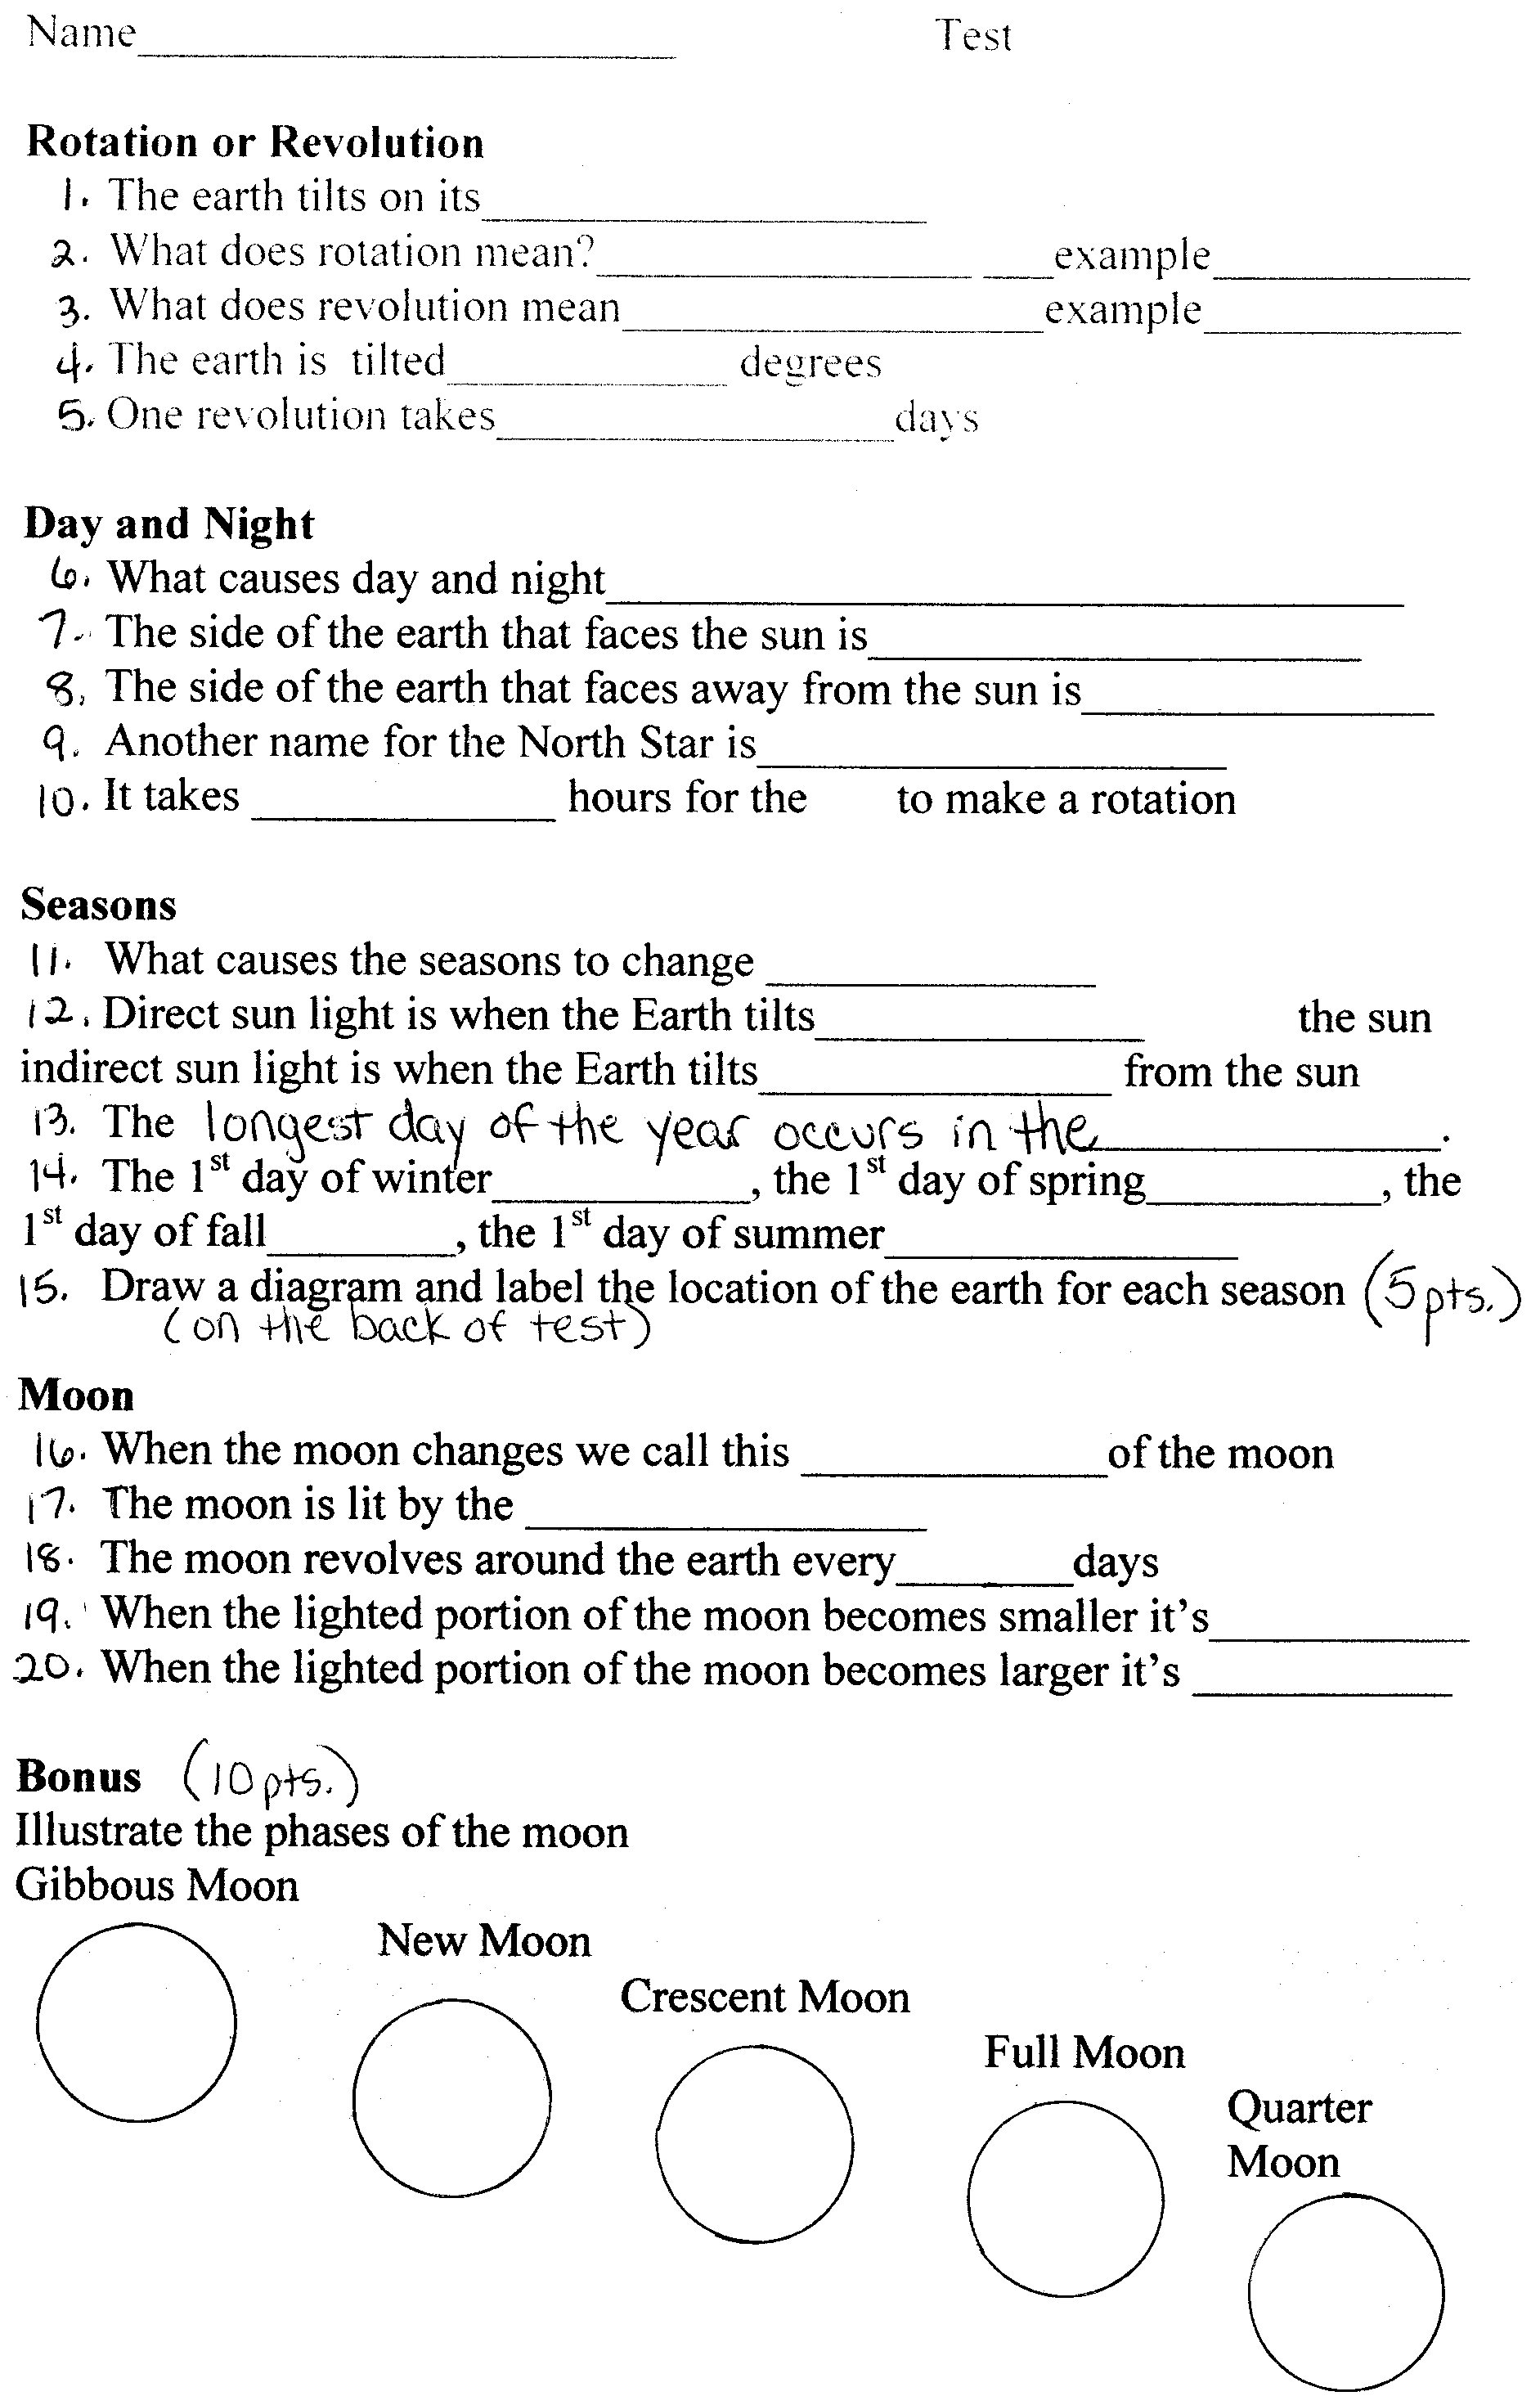 Worksheets Earth And Space Science Worksheets earth and space science worksheets